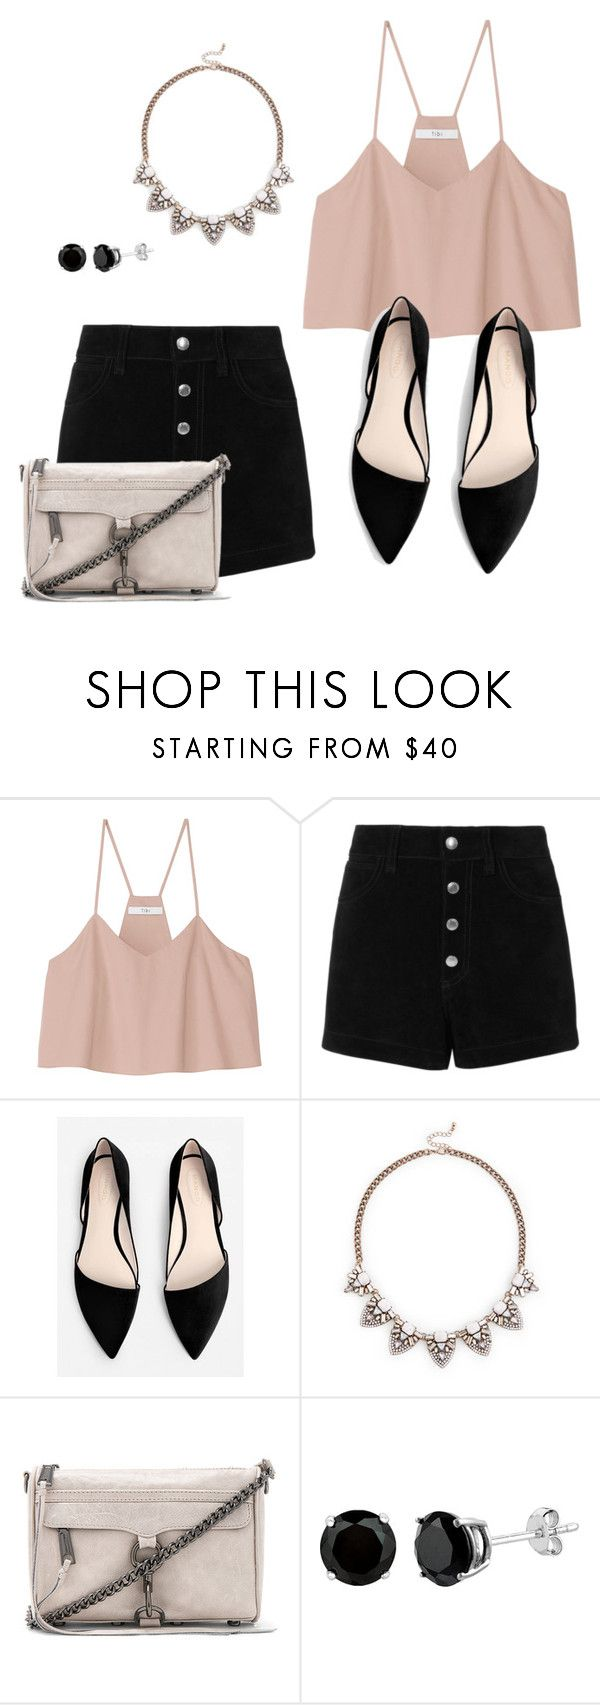 """""""Untitled #198"""" by rebekah112 ❤ liked on Polyvore featuring TIBI, rag & bone/JEAN, MANGO, Sole Society and Rebecca Minkoff"""